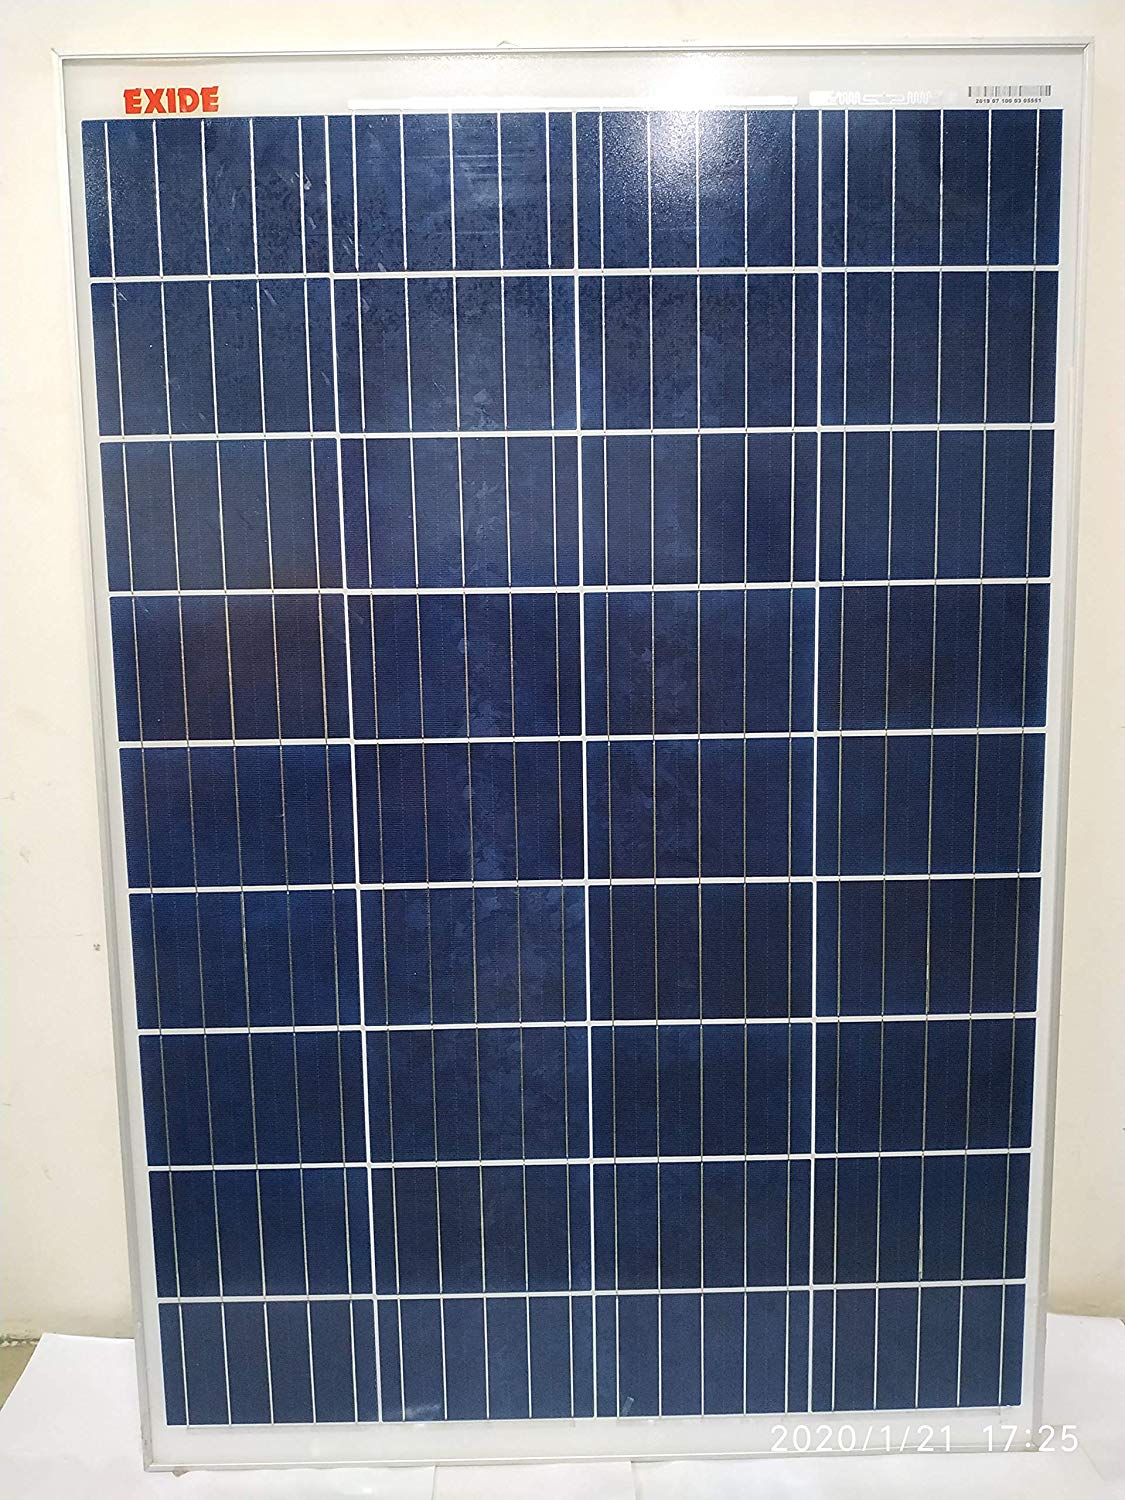 Best Value 100w Polycrystalline Solar Pv Panels On Sale Now Photo Voltaics Are Best Known As A Method For Generating Elect In 2020 Solar Pv Panel Pv Panels Solar Pv